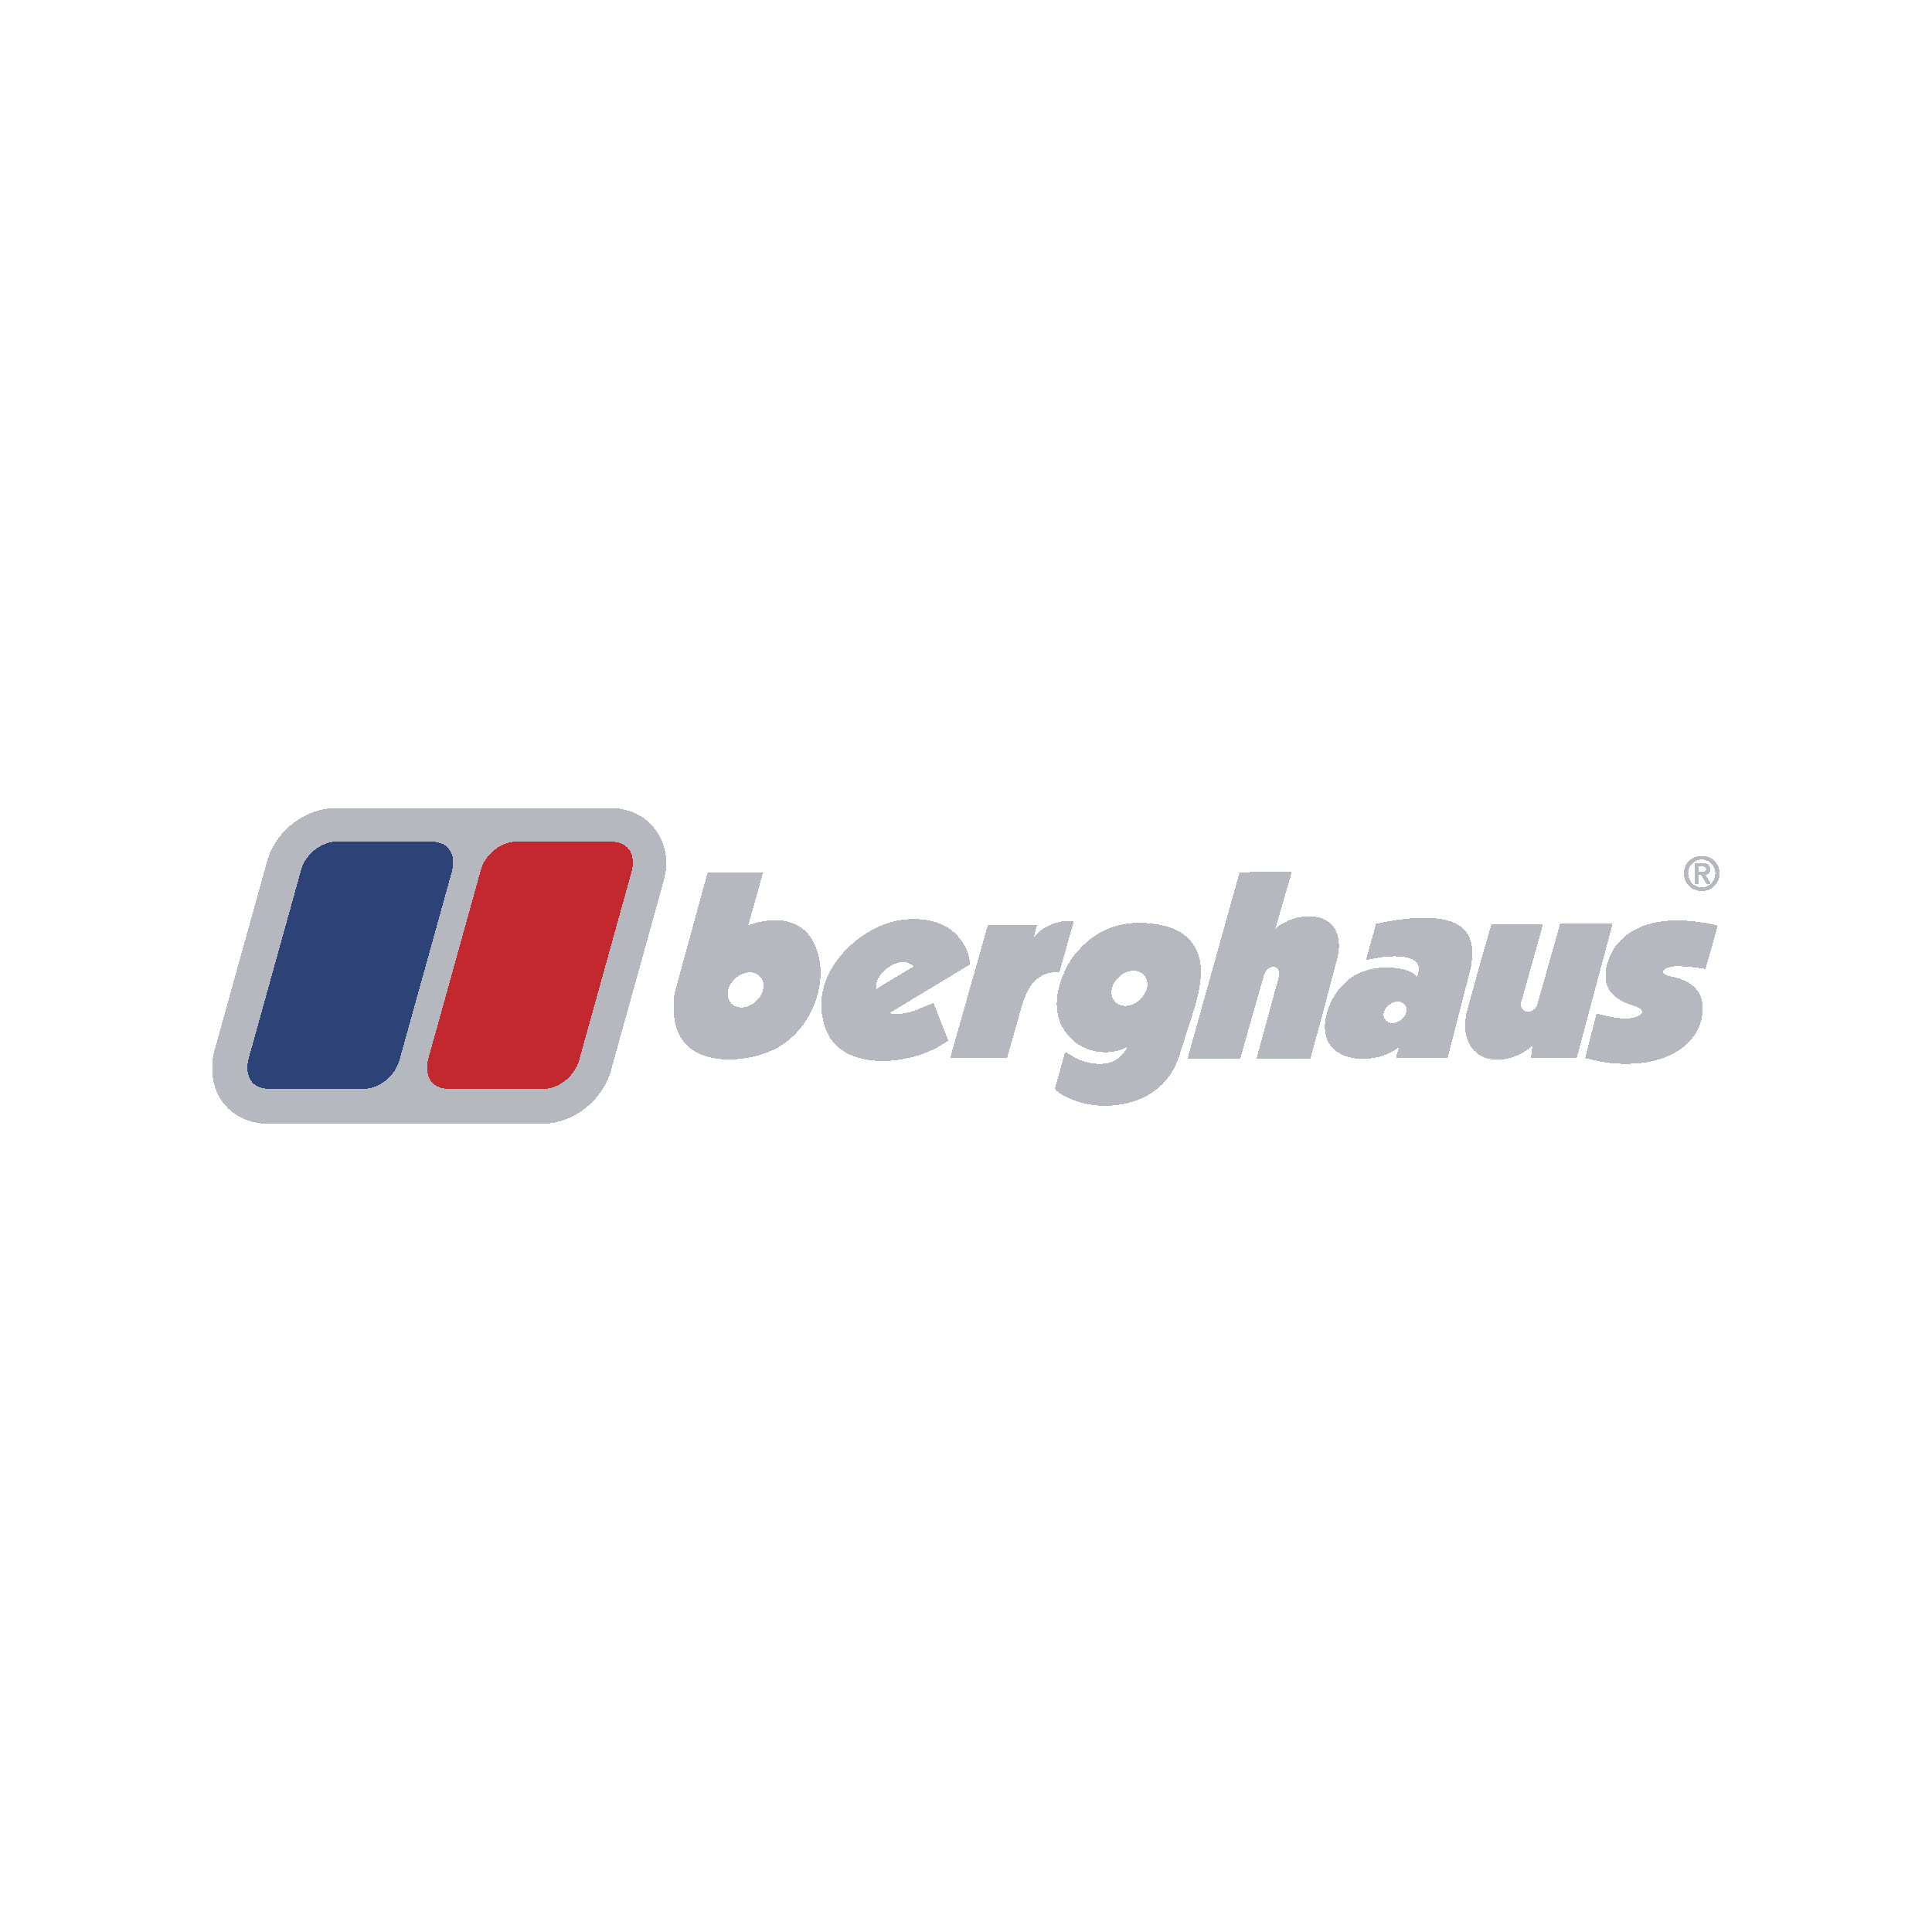 Berghaus Coupons & Promo Codes